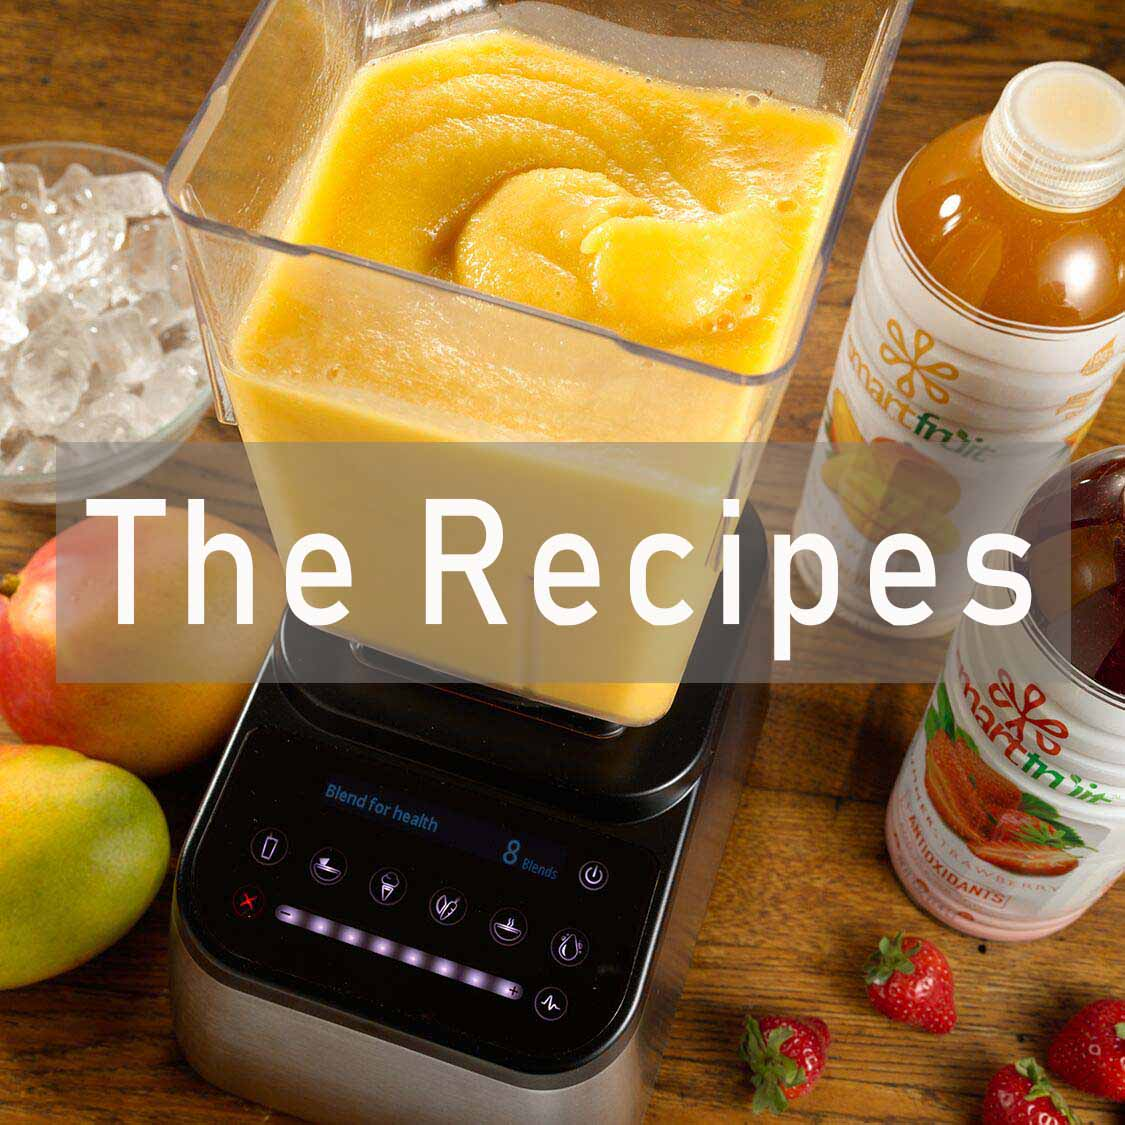 premium food + beverages products - web - the recipe_ld - title